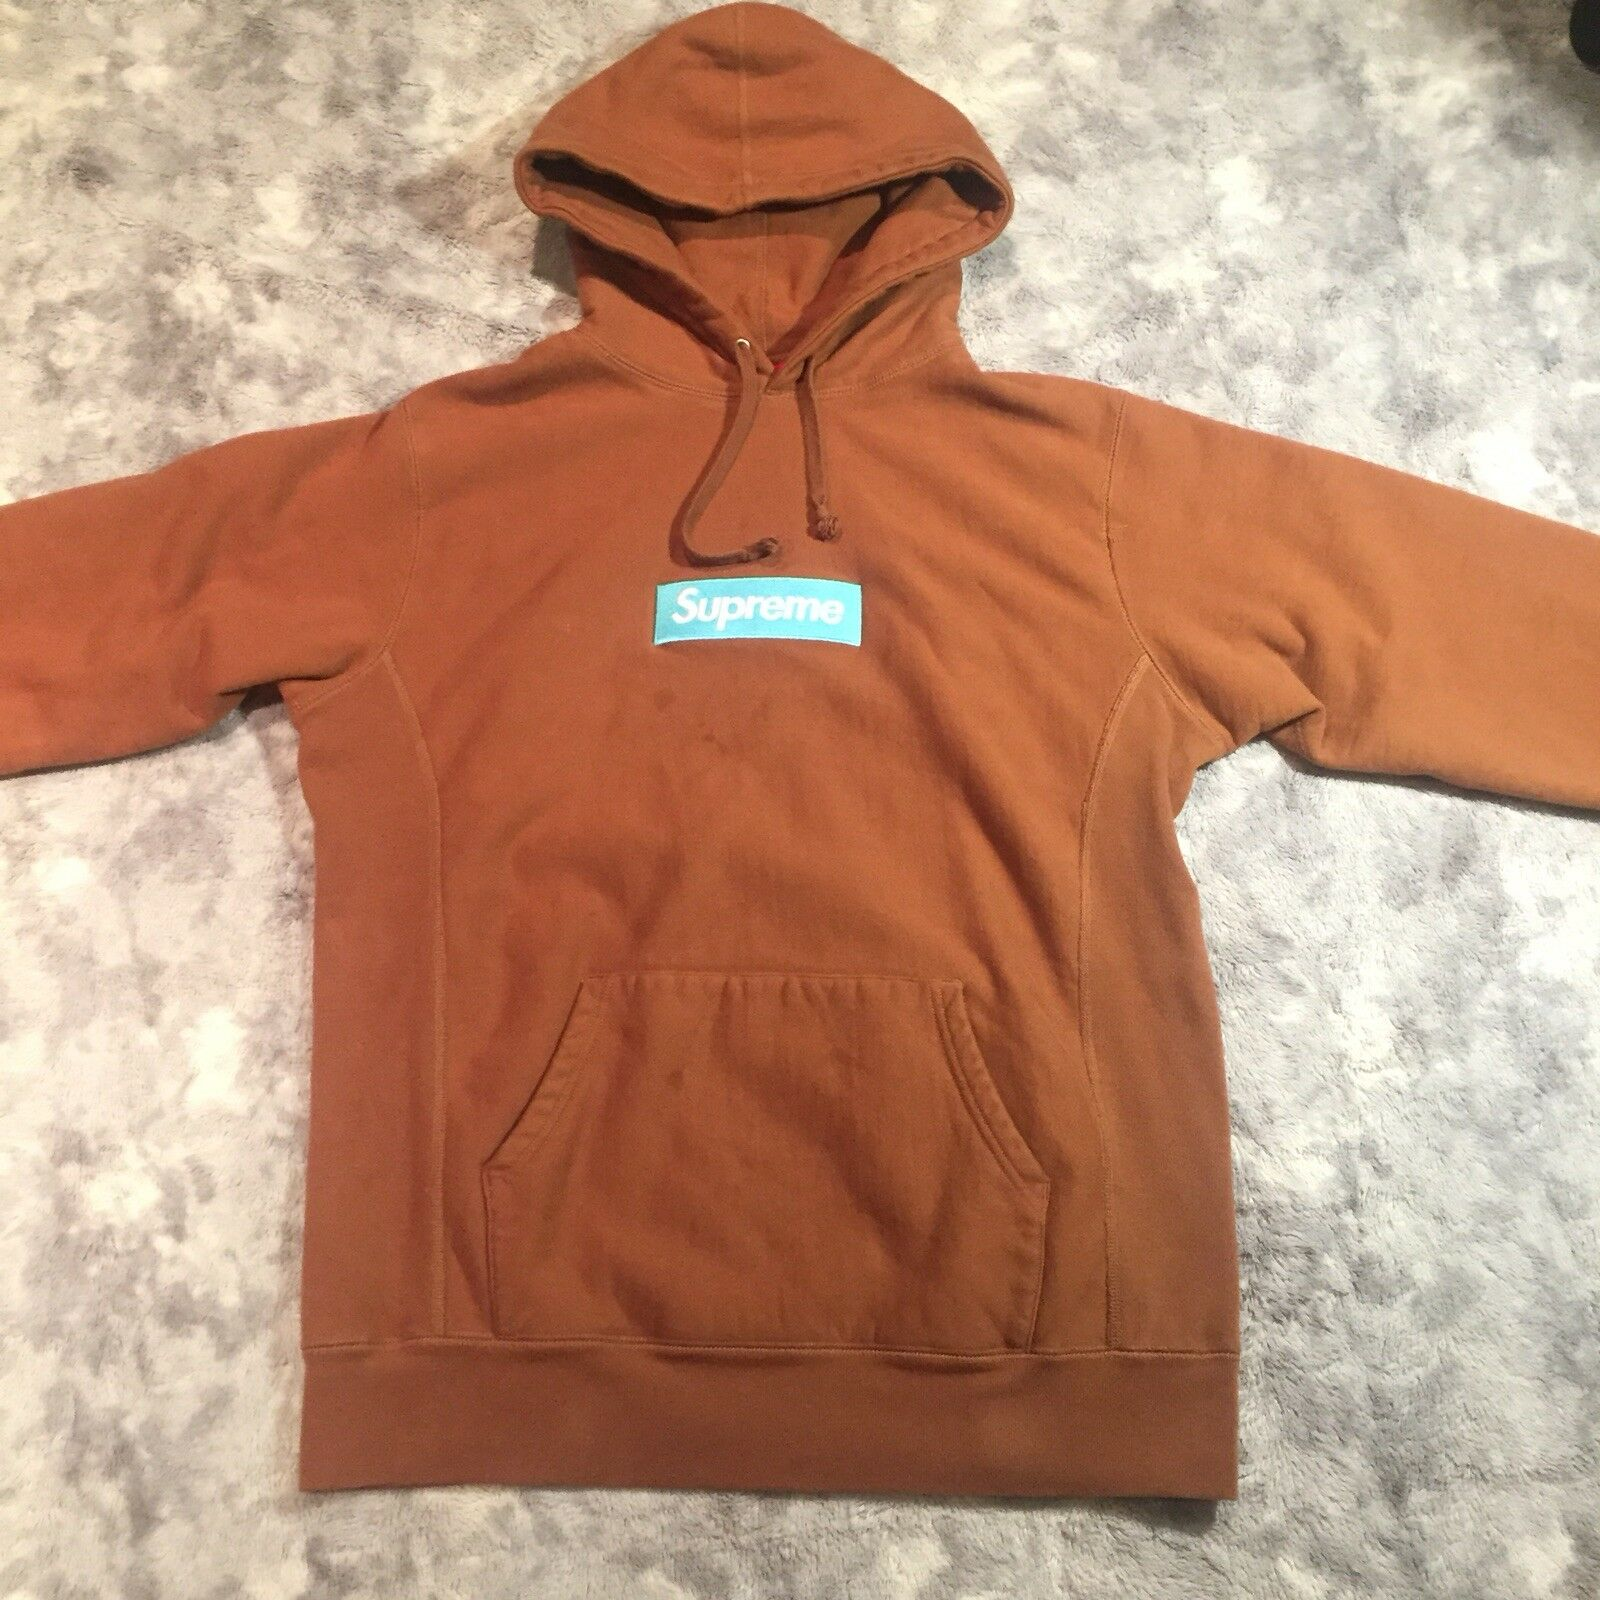 Authentic Supreme FW17 Box Logo Hoodie Sweatshirt Rust Brown Ice bluee XL Bogo